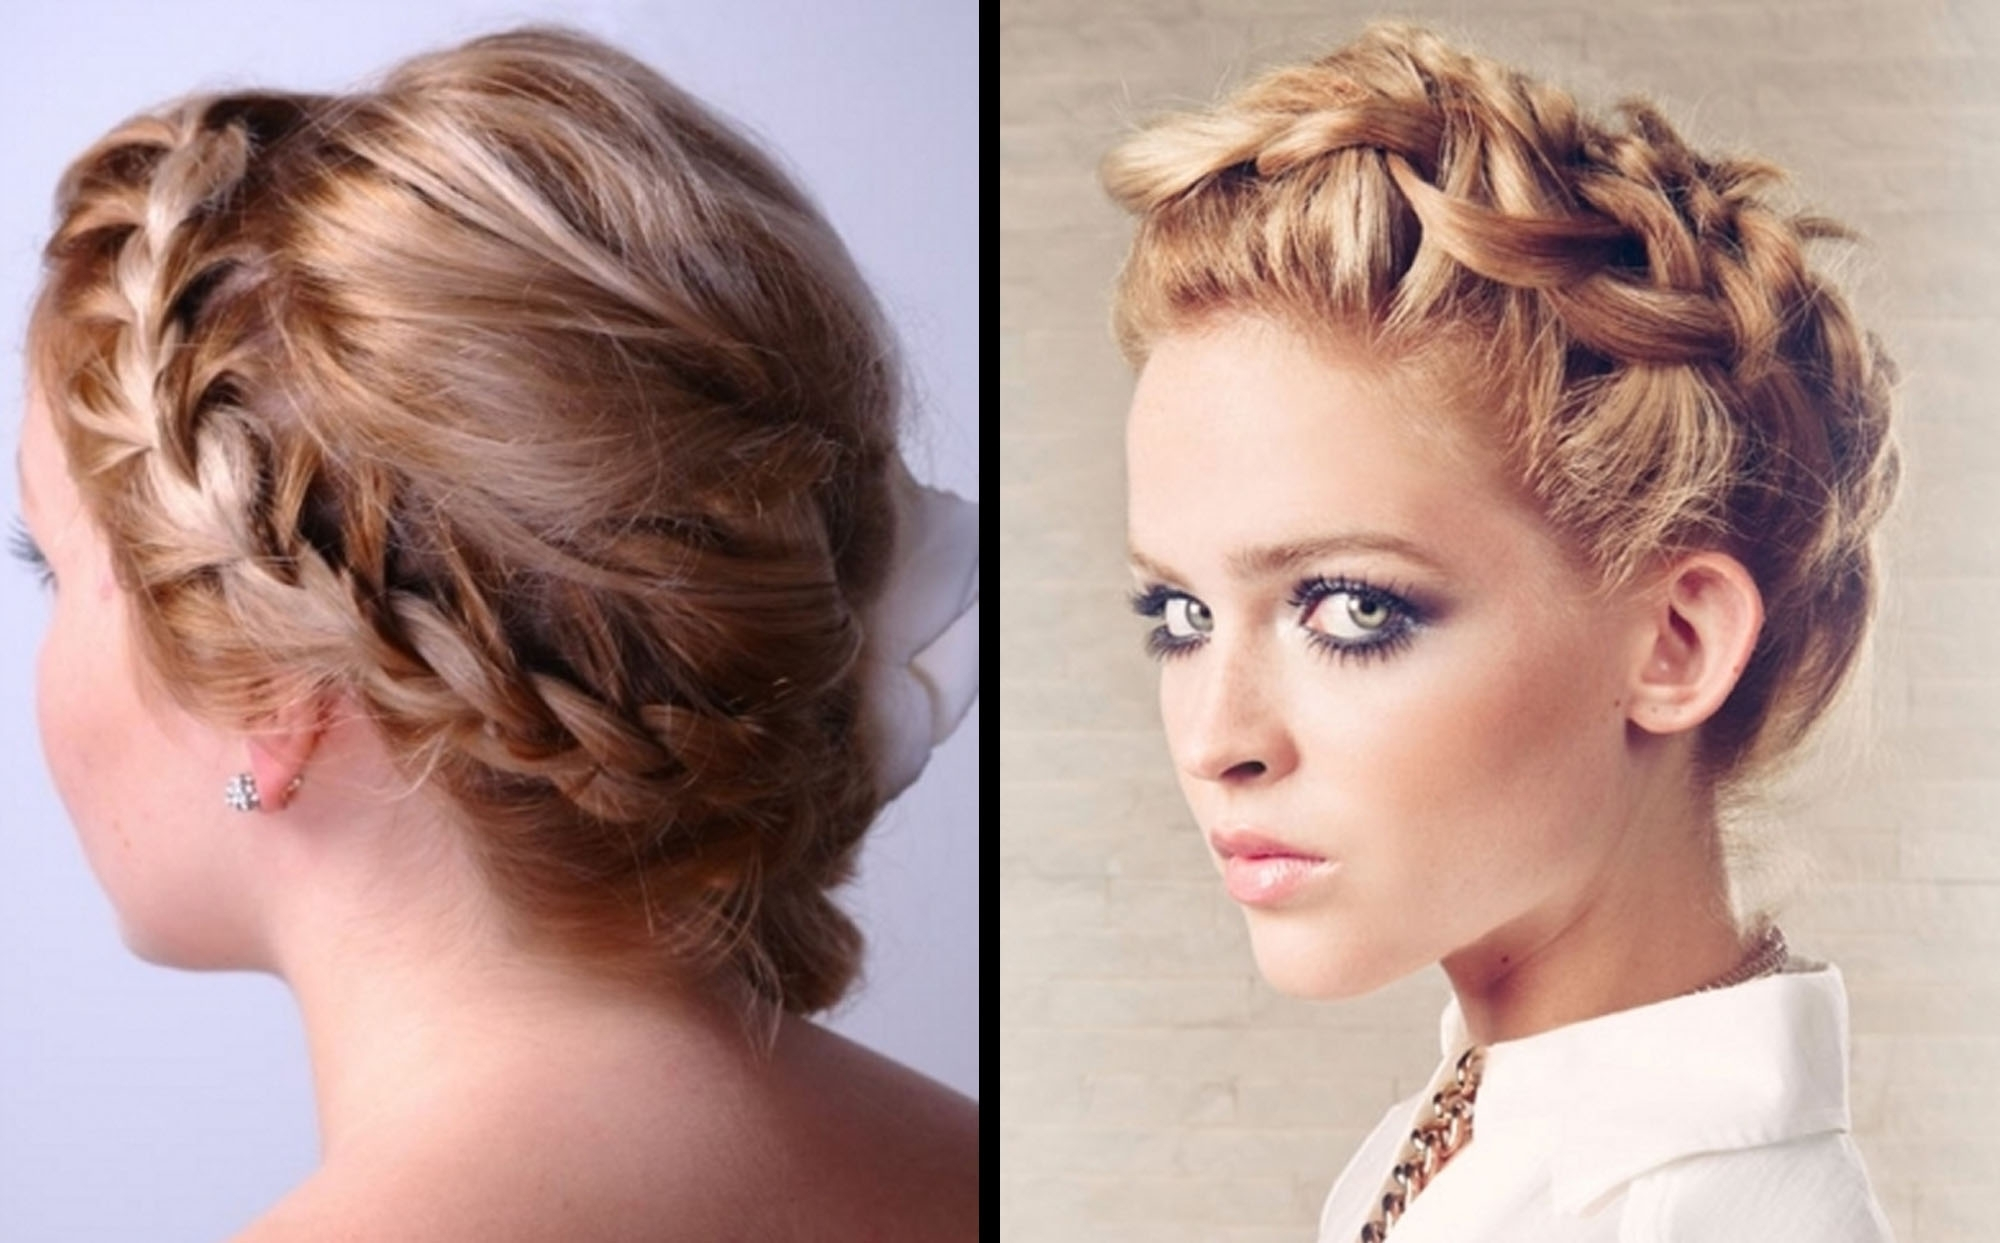 Updo Prom Hairstyles Short Prom Hairstyles Braids Medium Hair Styles Within Wavy Hair Updo Hairstyles (Gallery 12 of 15)